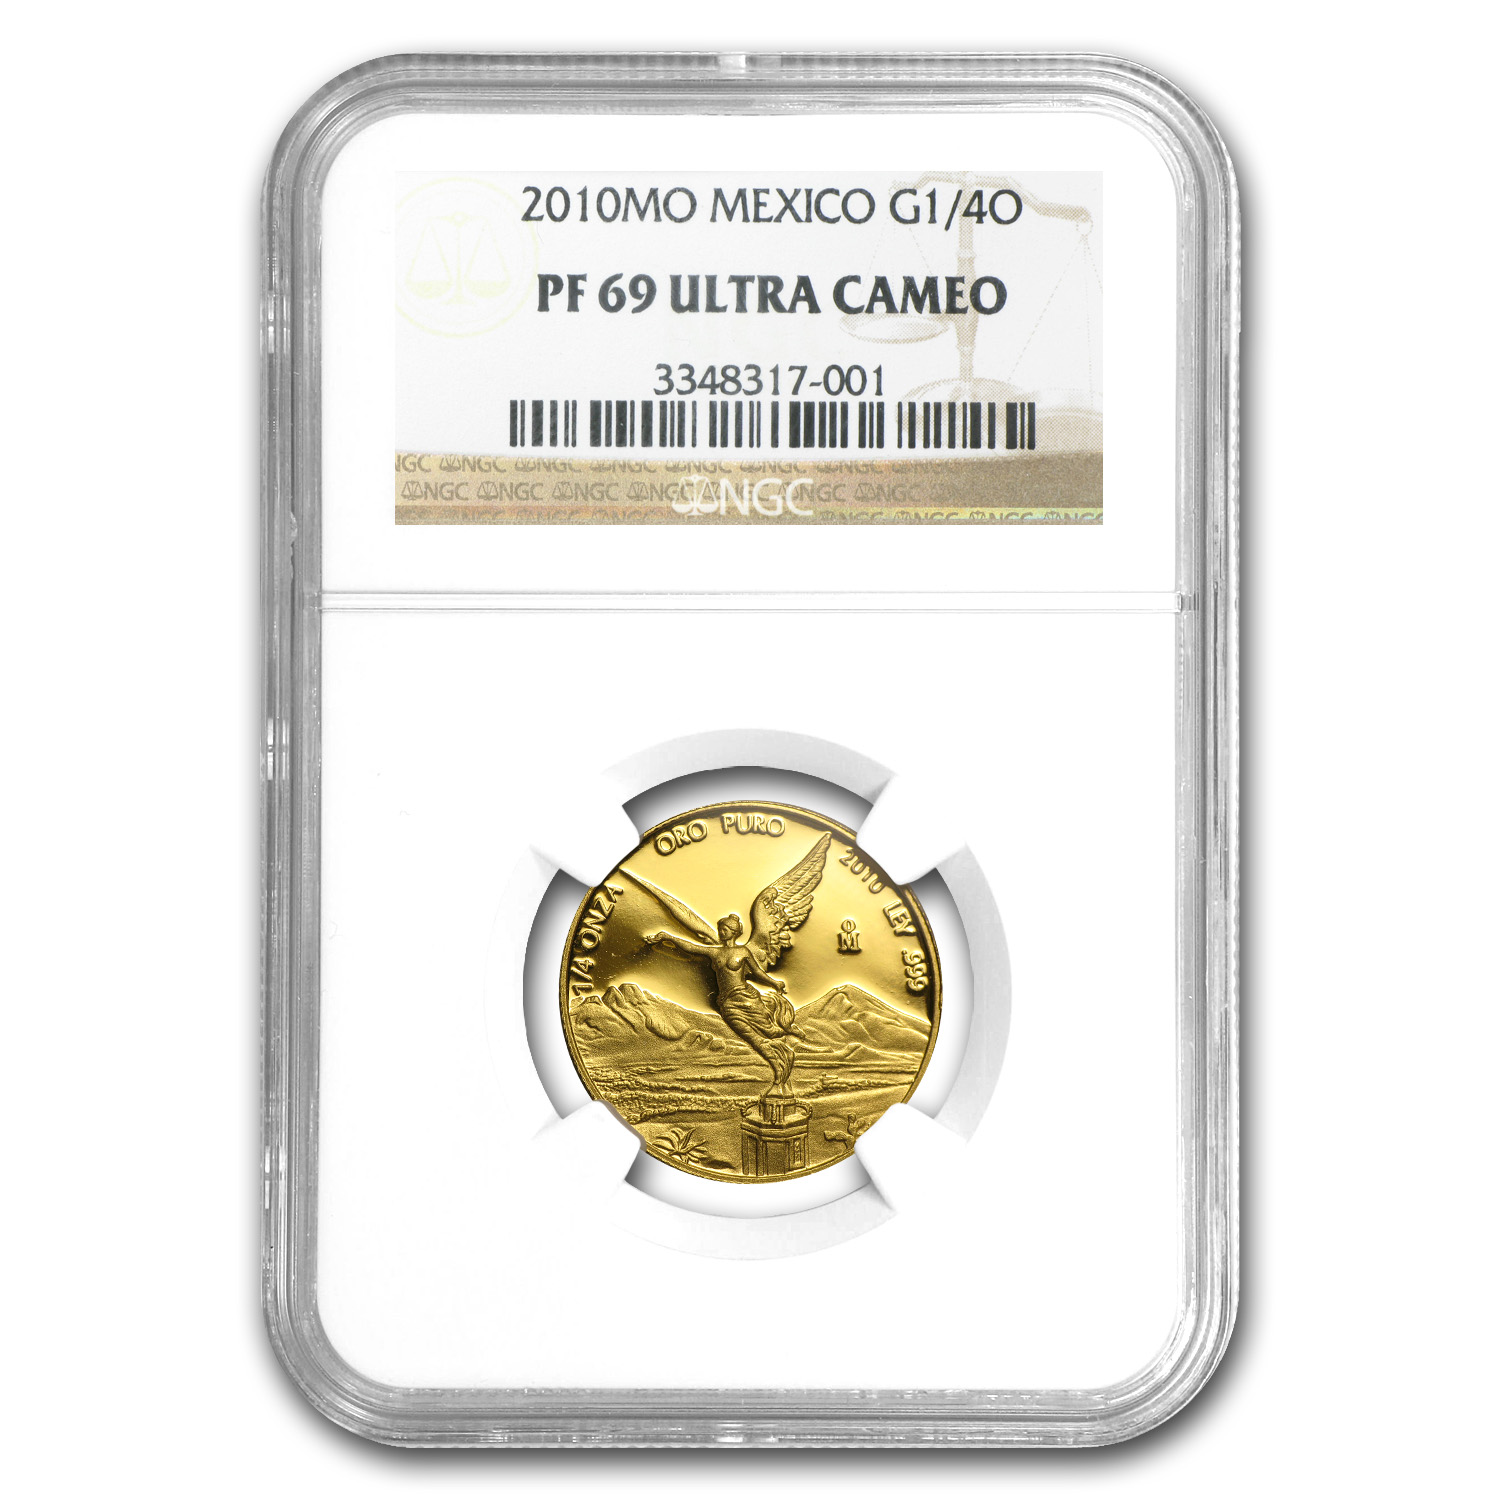 2010 Mexico 1/4 oz Gold Libertad PF-69 NGC